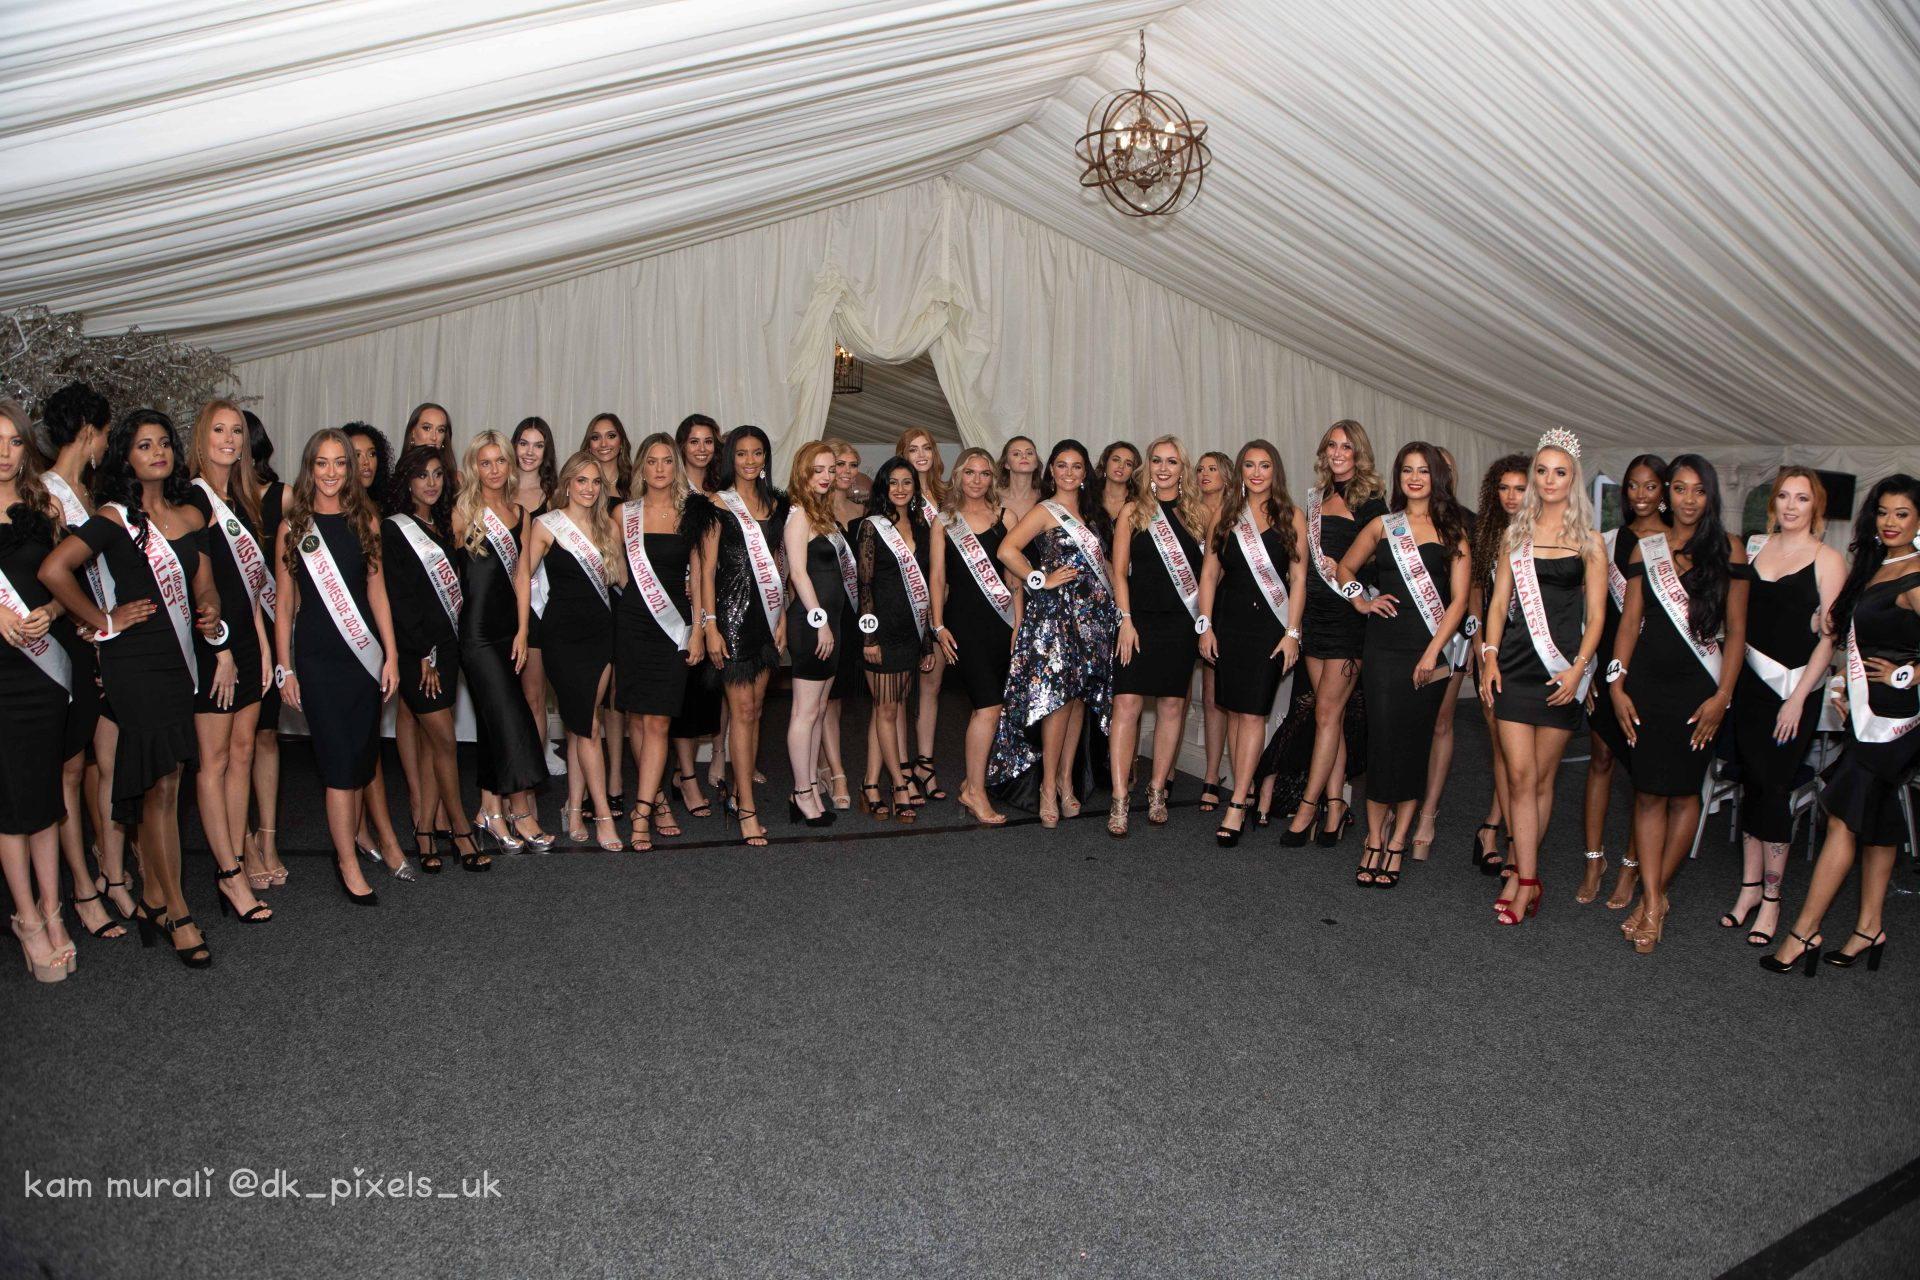 Miss England Finalists raise over £40,000 for Beauty With A Purpose